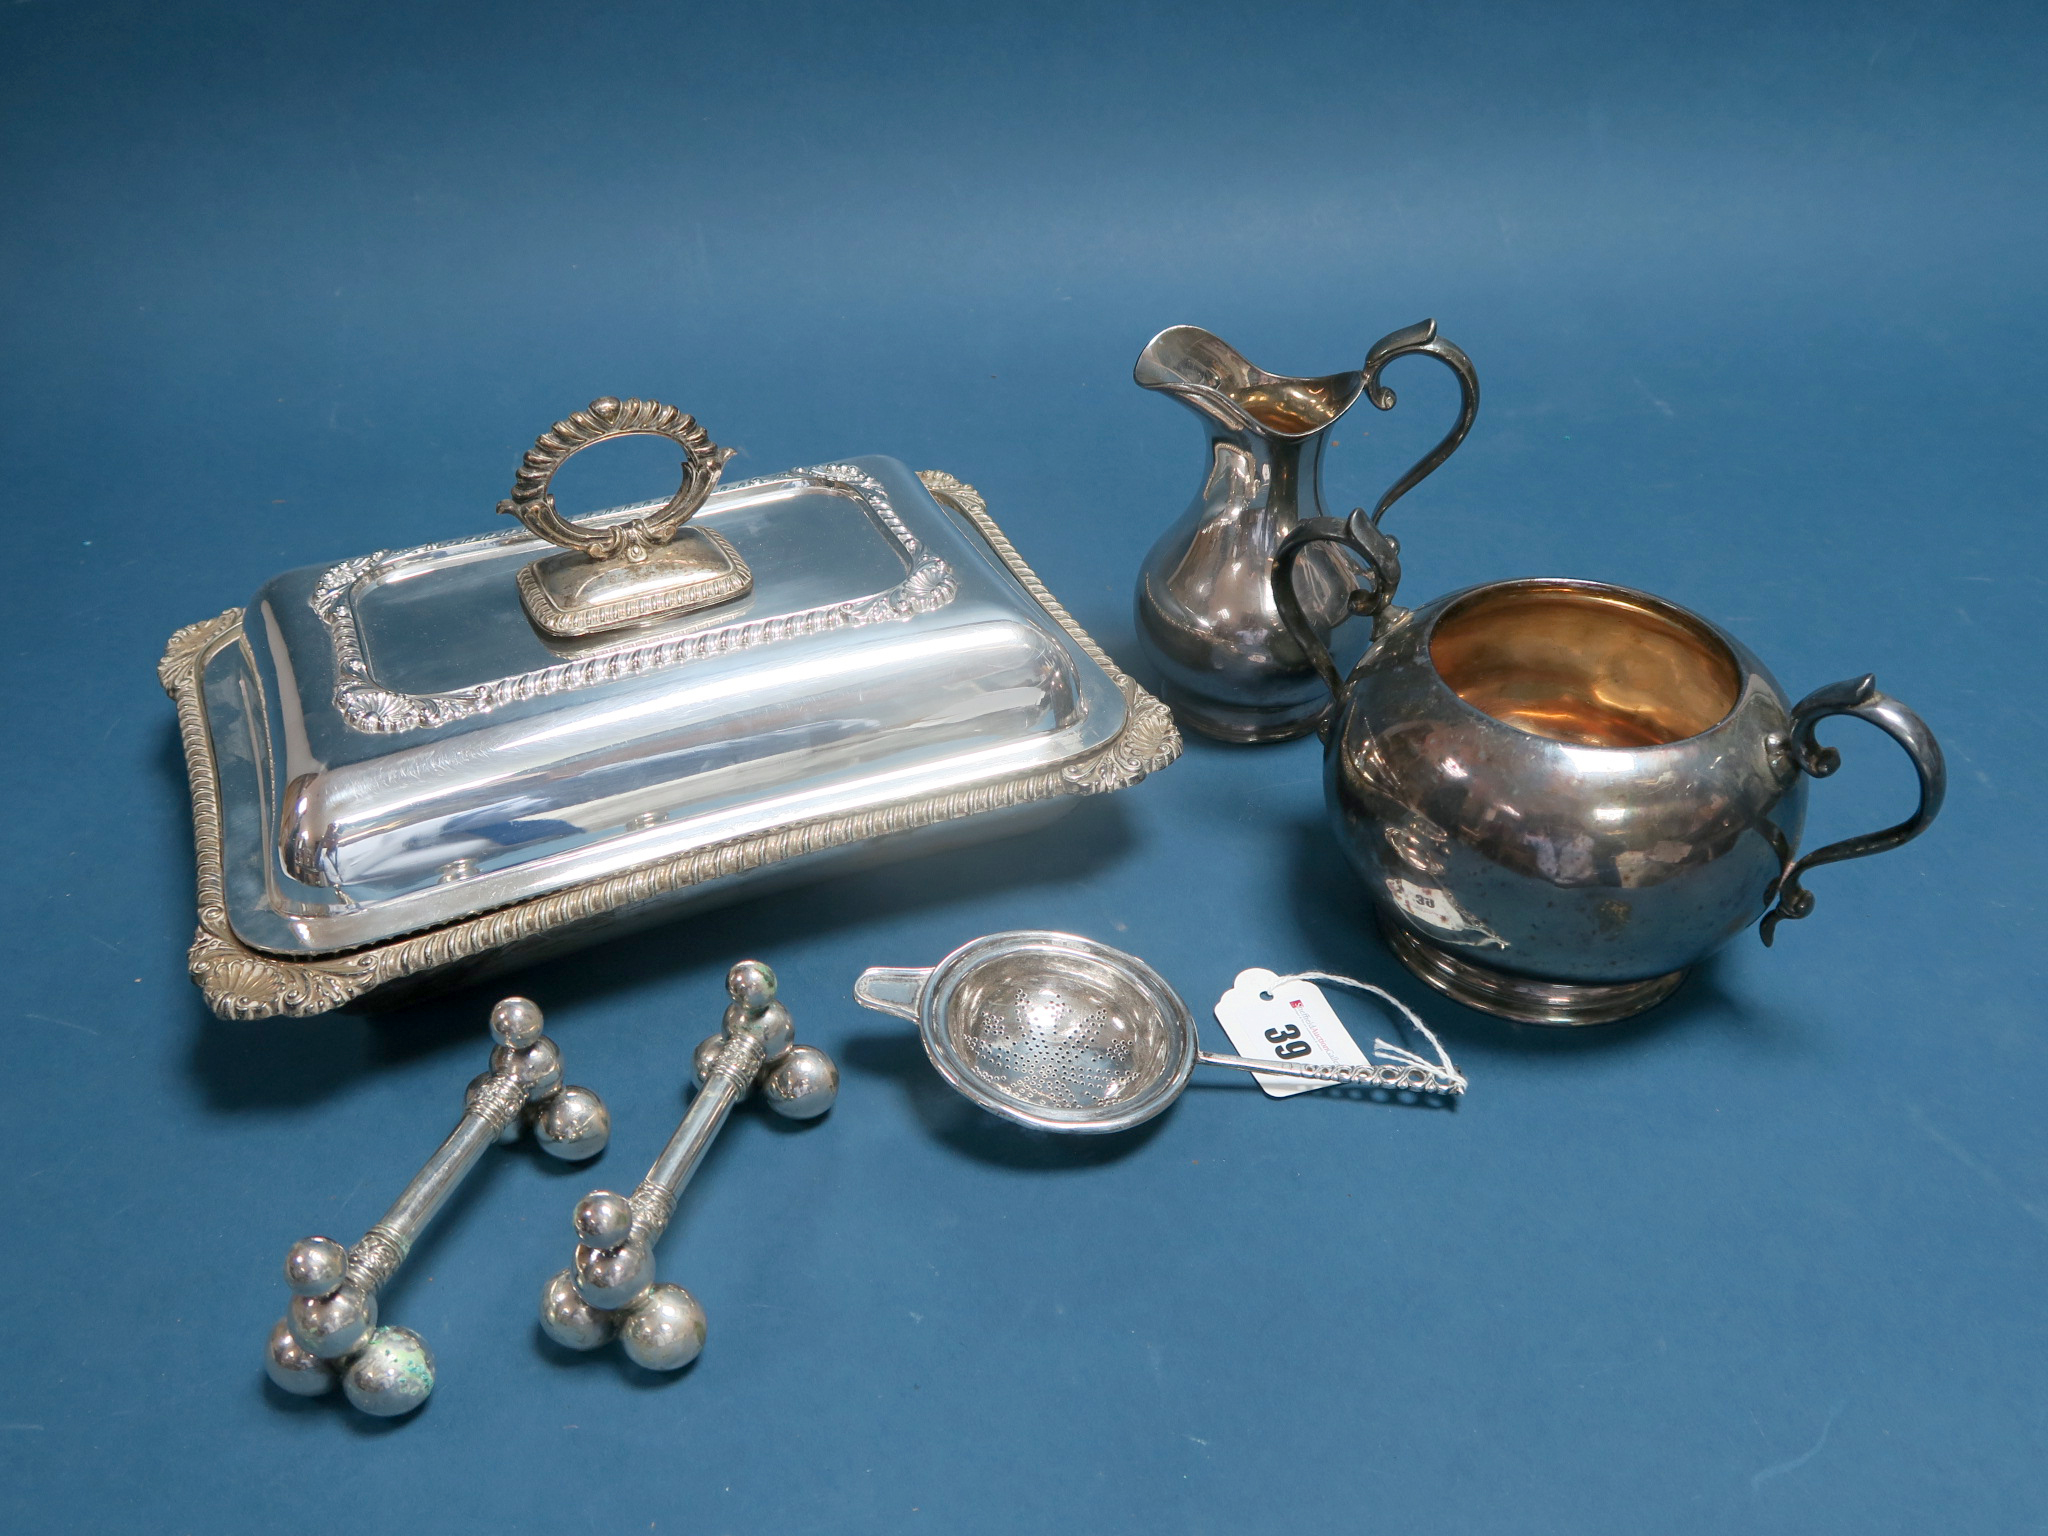 Lot 39 - A Hallmarked Silver Tea Strainer, HA, Sheffield 1901, with pierced handle, together with a pair of